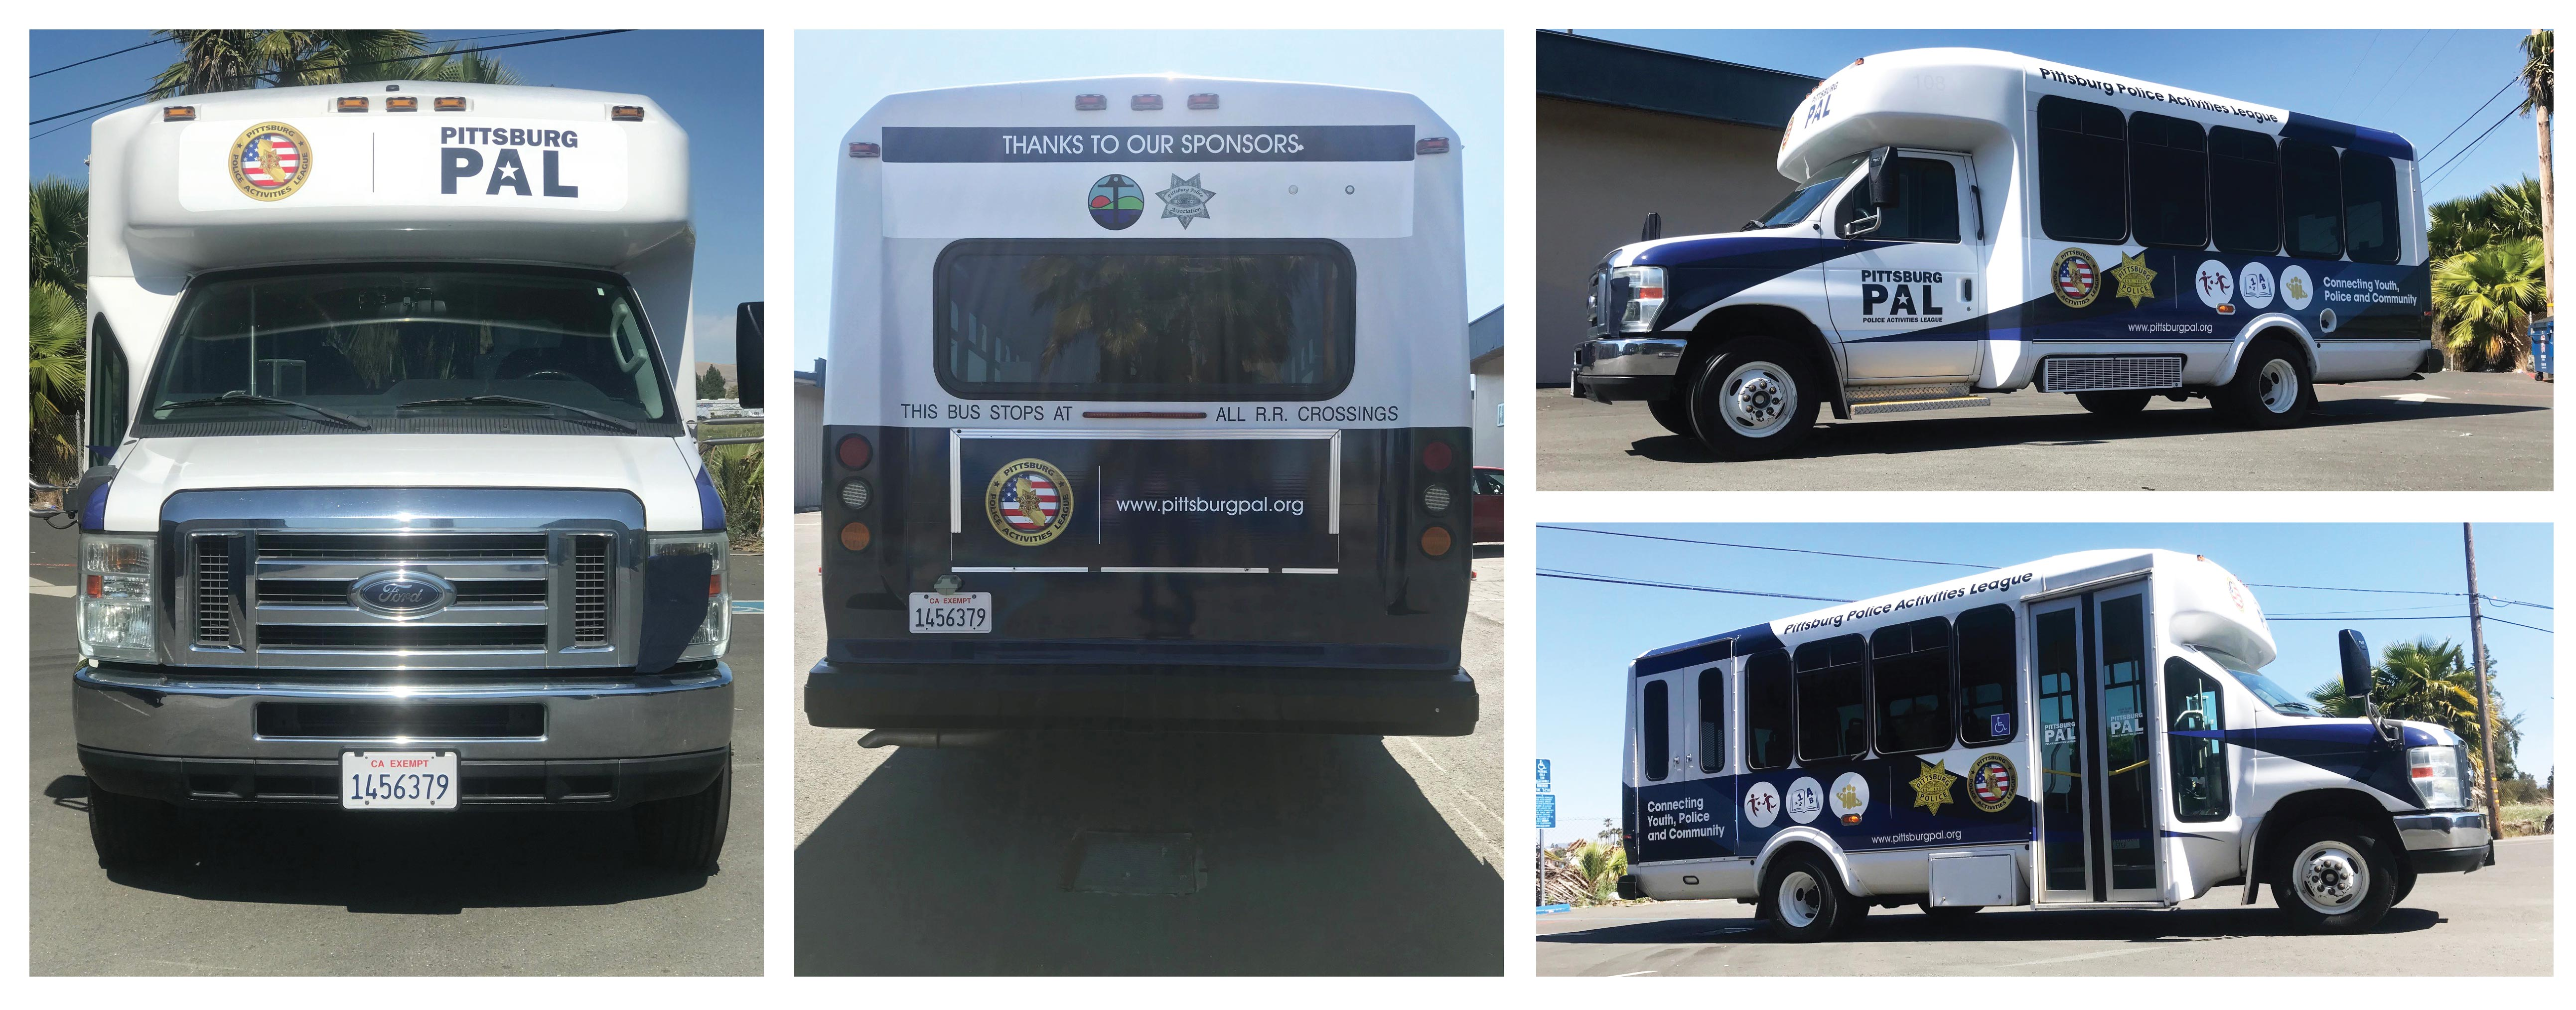 Commercial vehicle wraps for your business